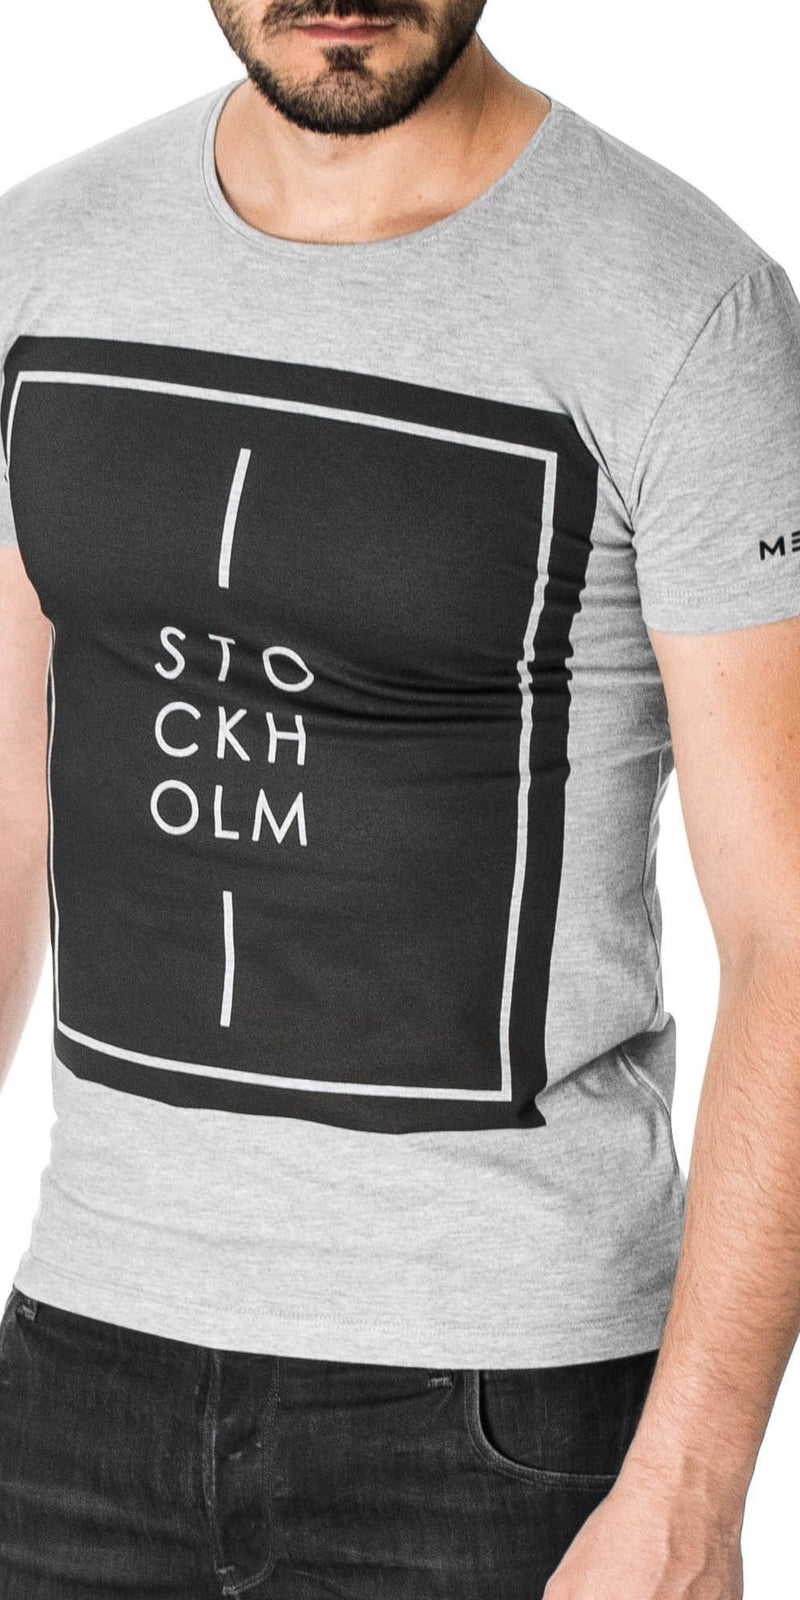 stockholm graphic t-shirt Mexess